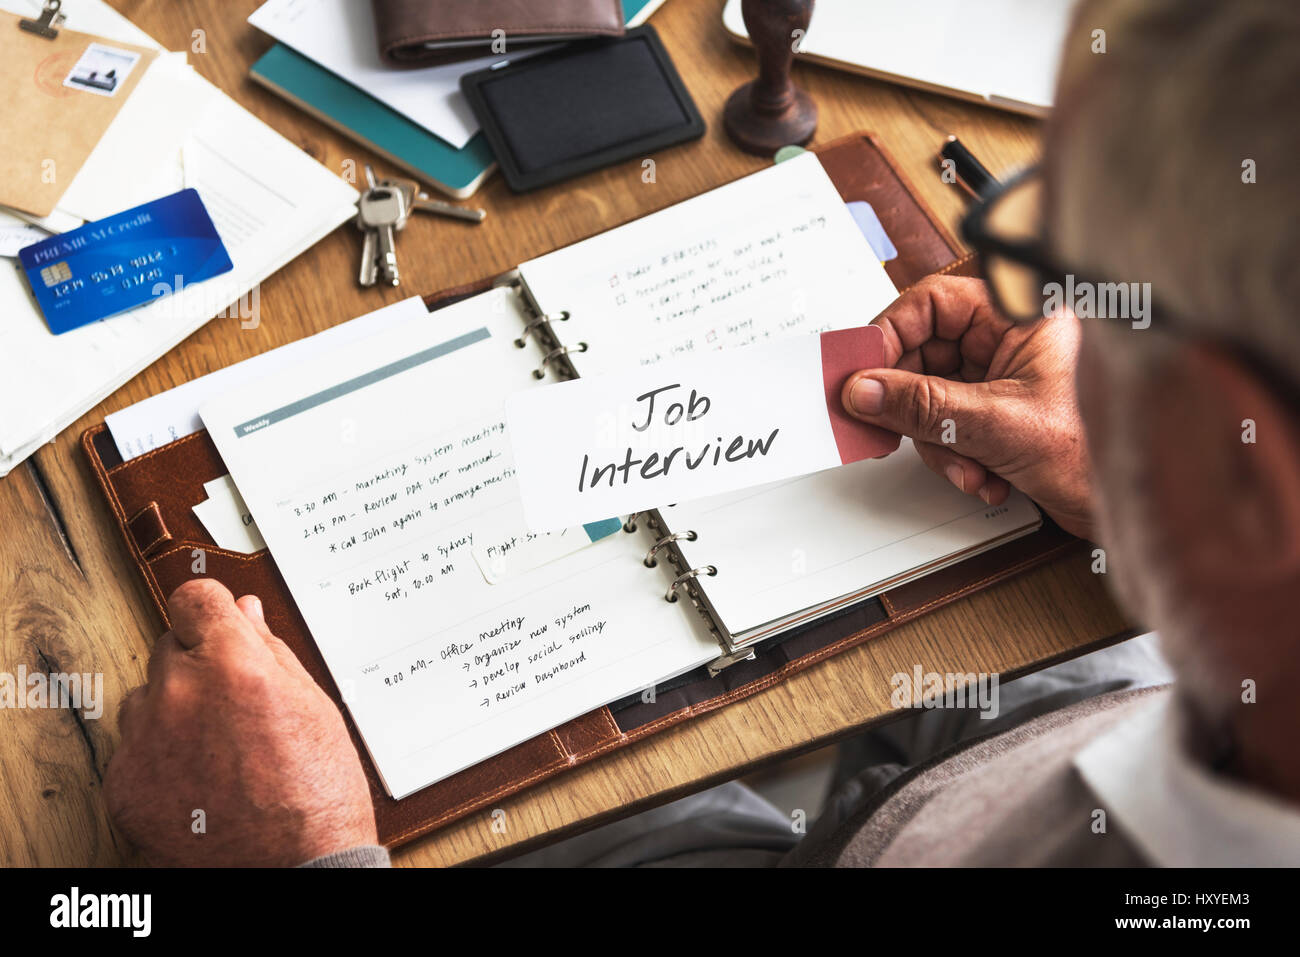 Job Interview Career Employment Recruitment Concept - Stock Image